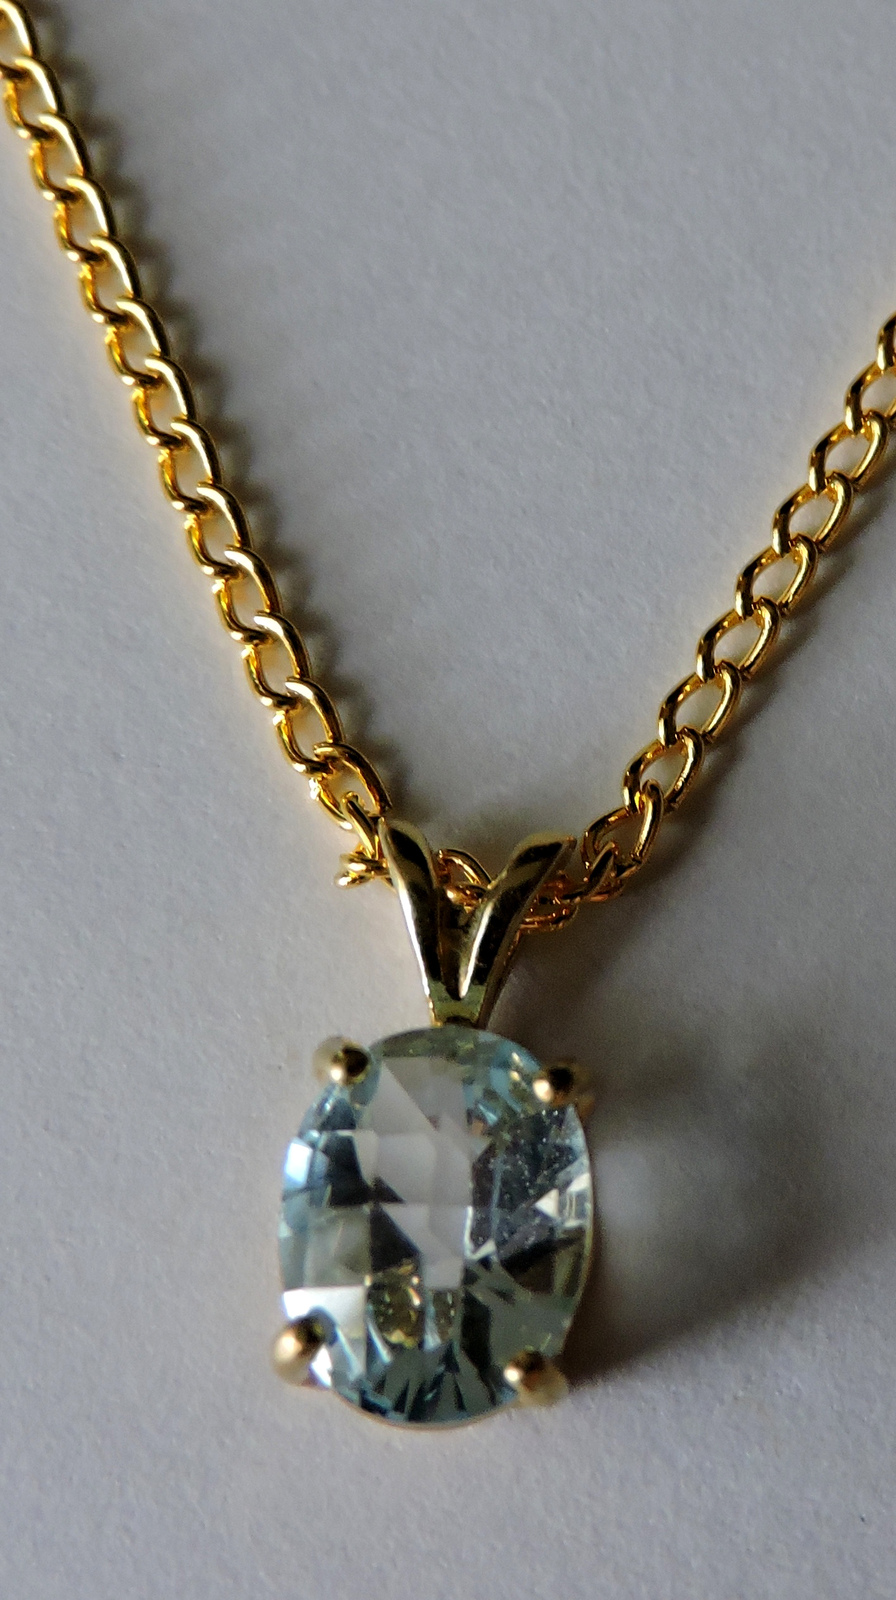 Sparkly Faceted Sky Blue Topaz 14k Gold Plated Pendant  Necklace #3